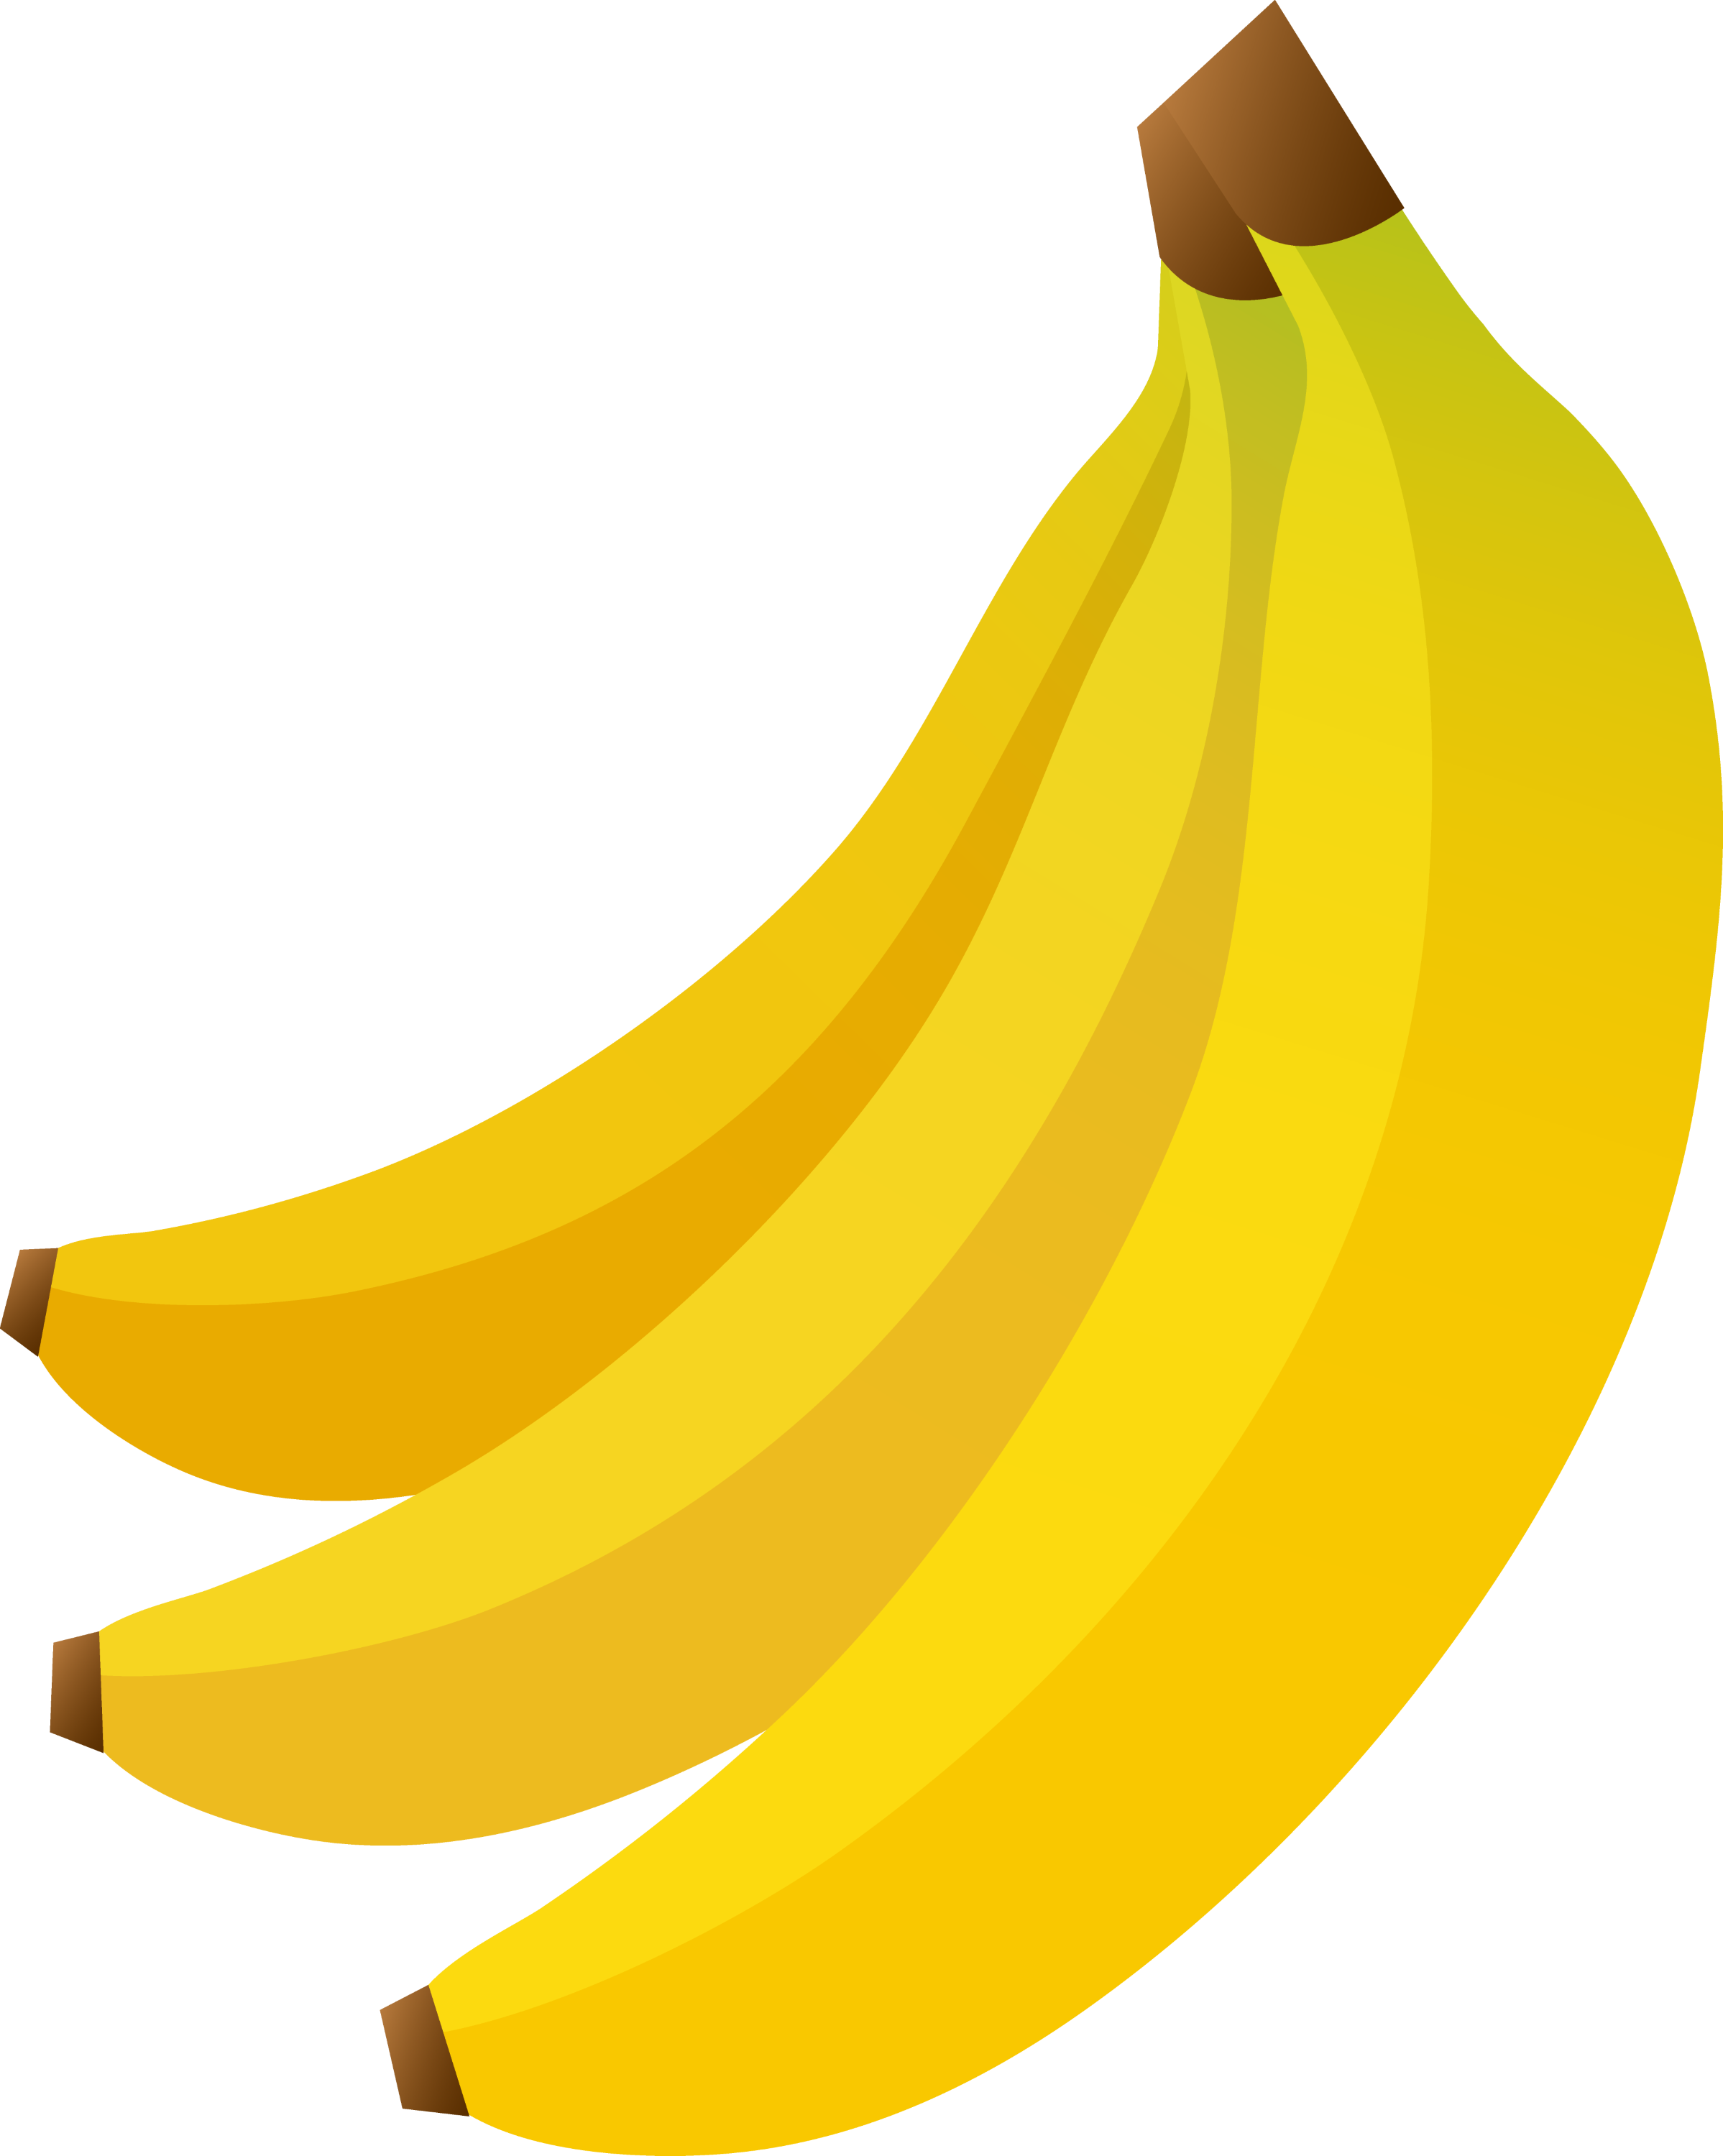 bunch of three bananas free clip art rh sweetclipart com free banana clipart black and white Banana Peel Clip Art